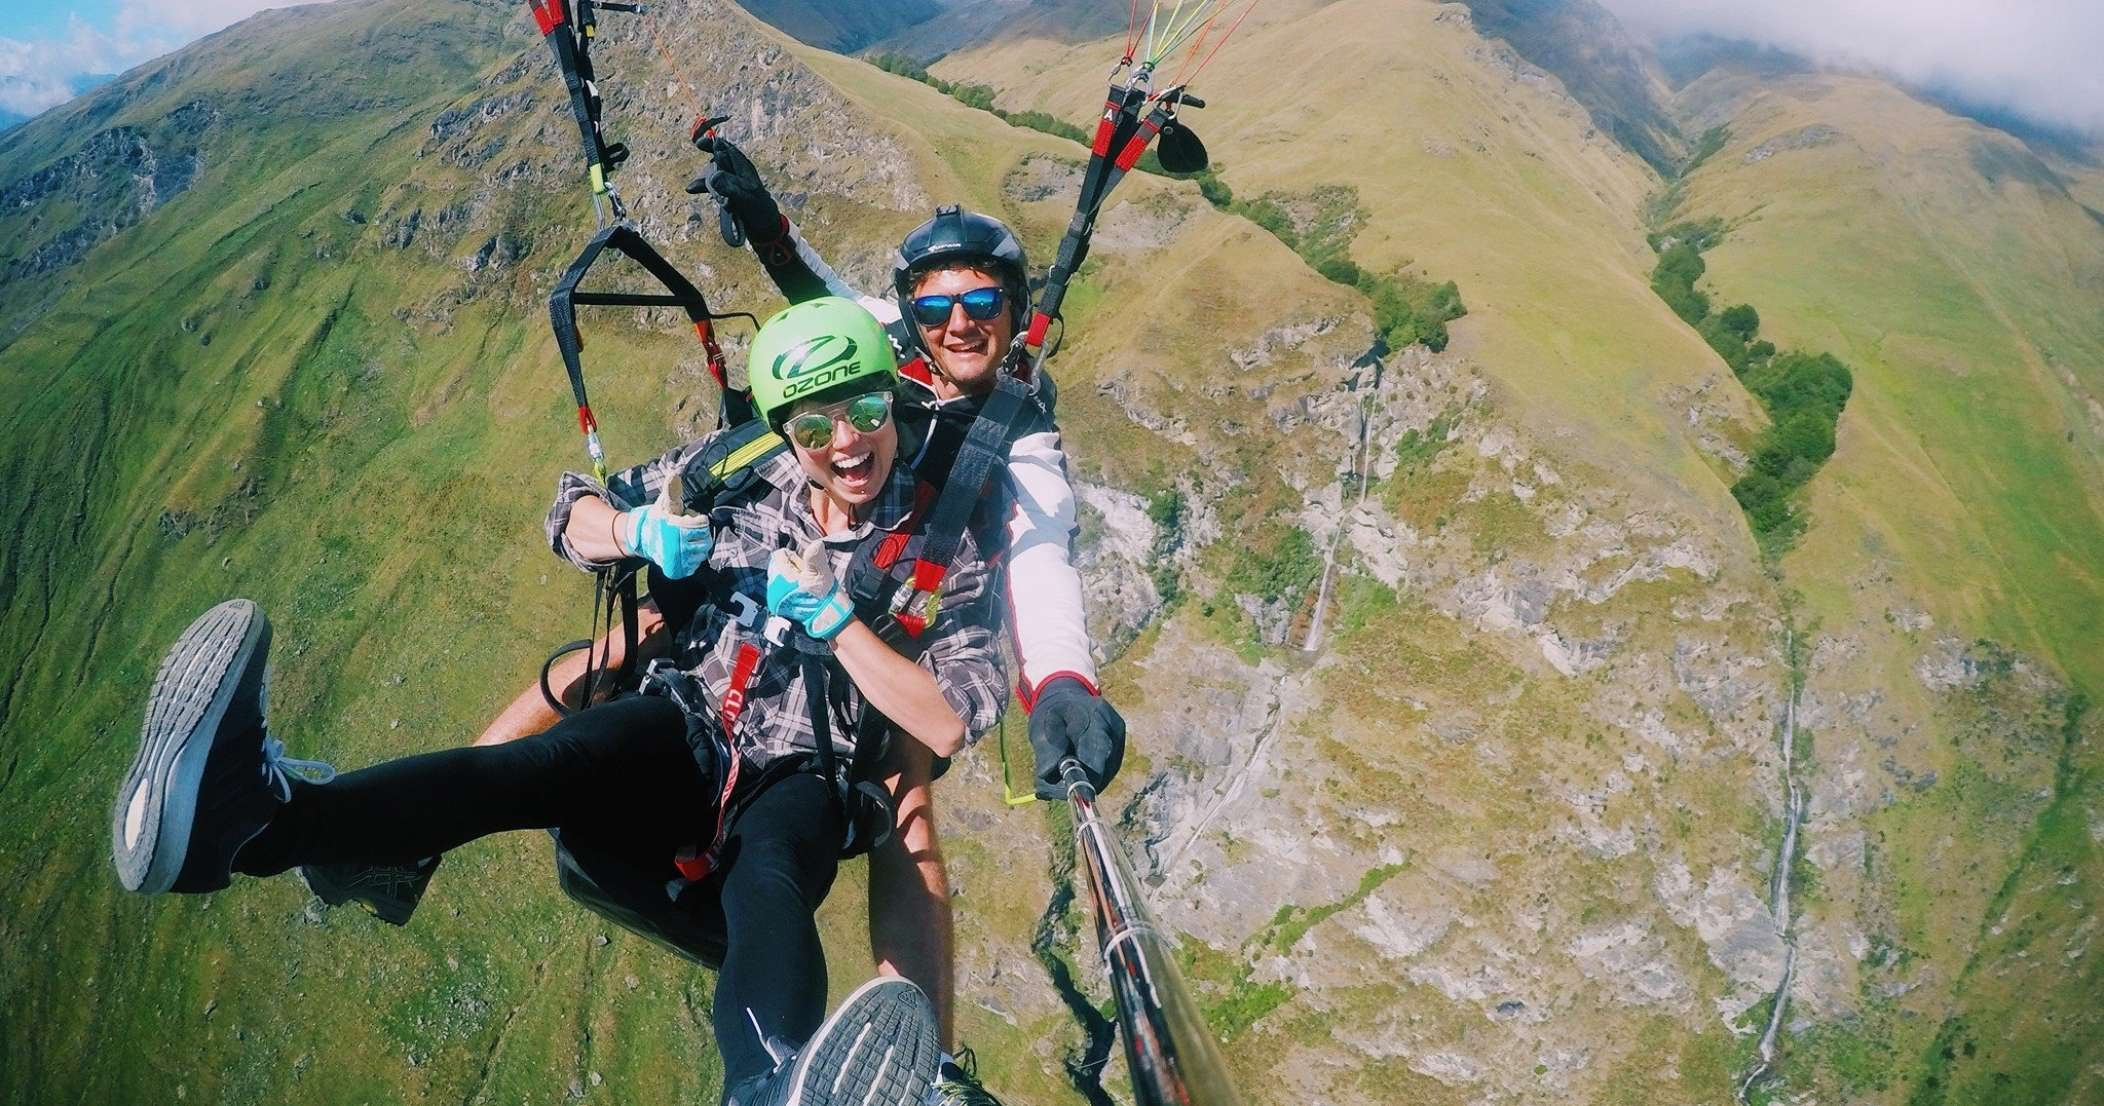 The Experience - Flying in a paraglider is a feeling like no other. Imagine sitting in an armchair, hundreds of meters in the sky, feeling totally exposed yet completely secure. Watching deer run below, hawks flying beside you and hearing the rumble of the waterfalls as your pilot manoeuvres the glider within meters of the impressive Twin Falls.